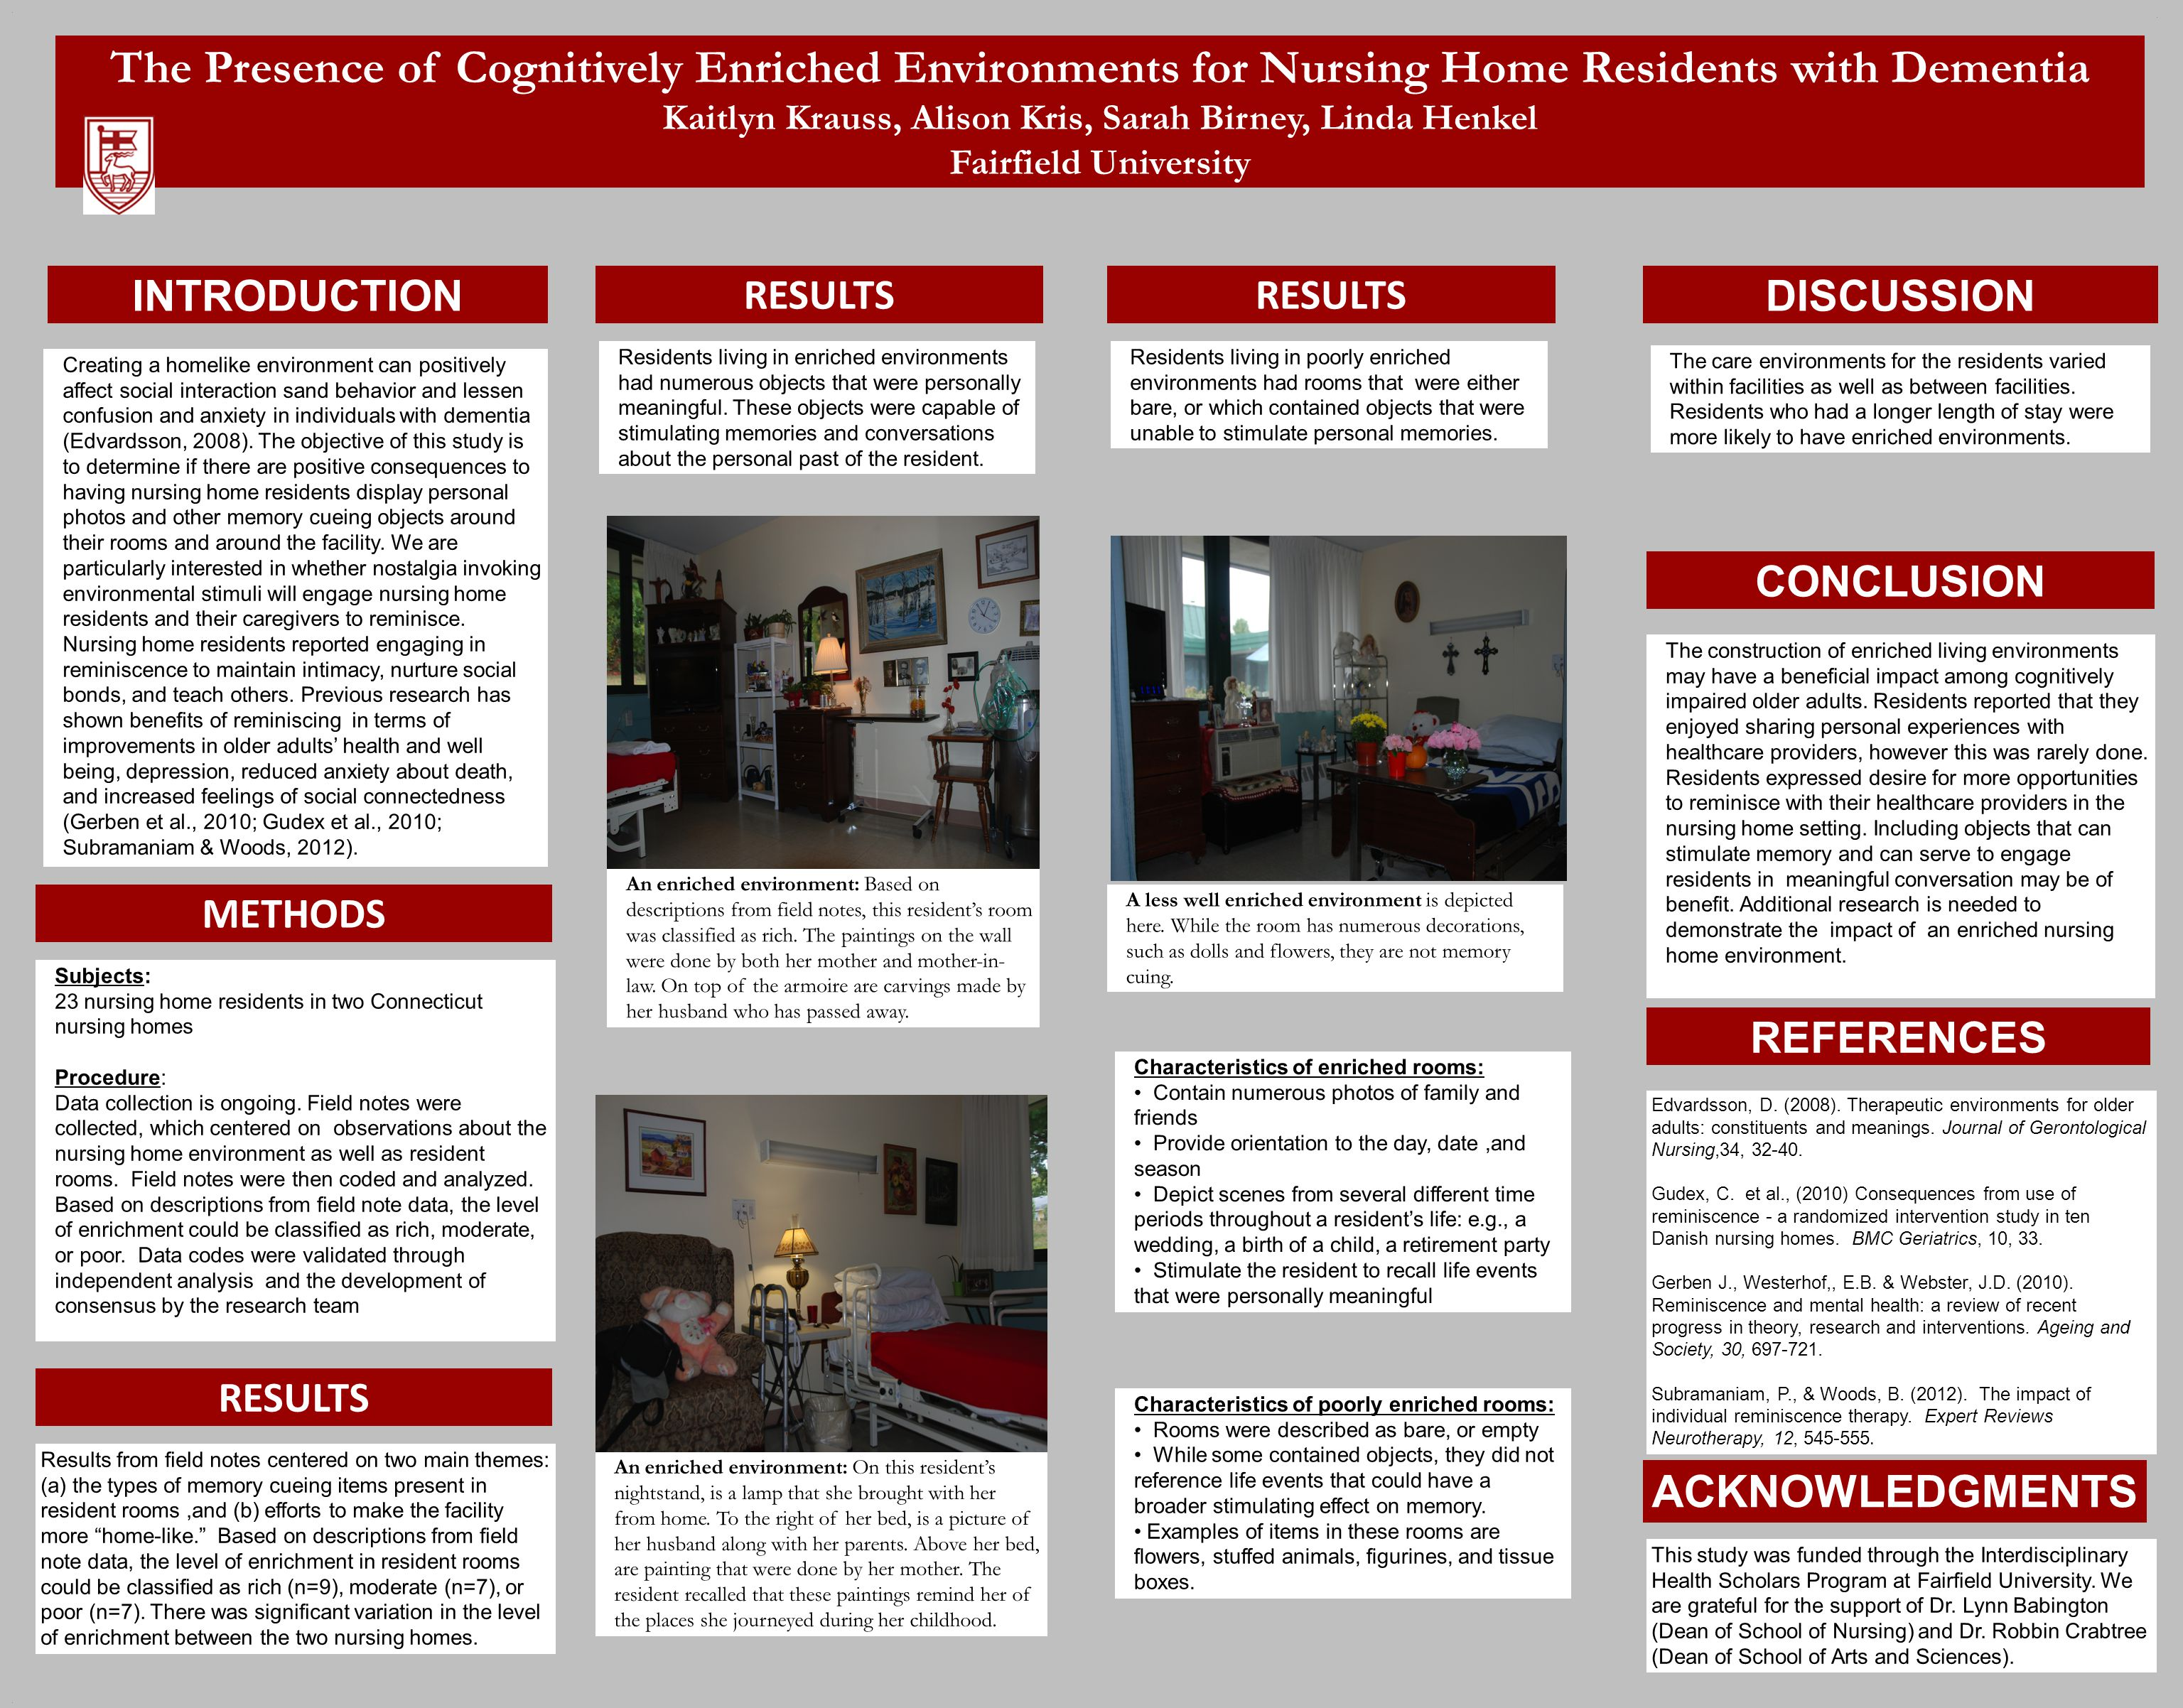 ... The Presence of Cognitively Enriched Environments for Nursing Home Residents with Dementia Kaitlyn Krauss, Alison Kris, Sarah Birney, Linda Henkel